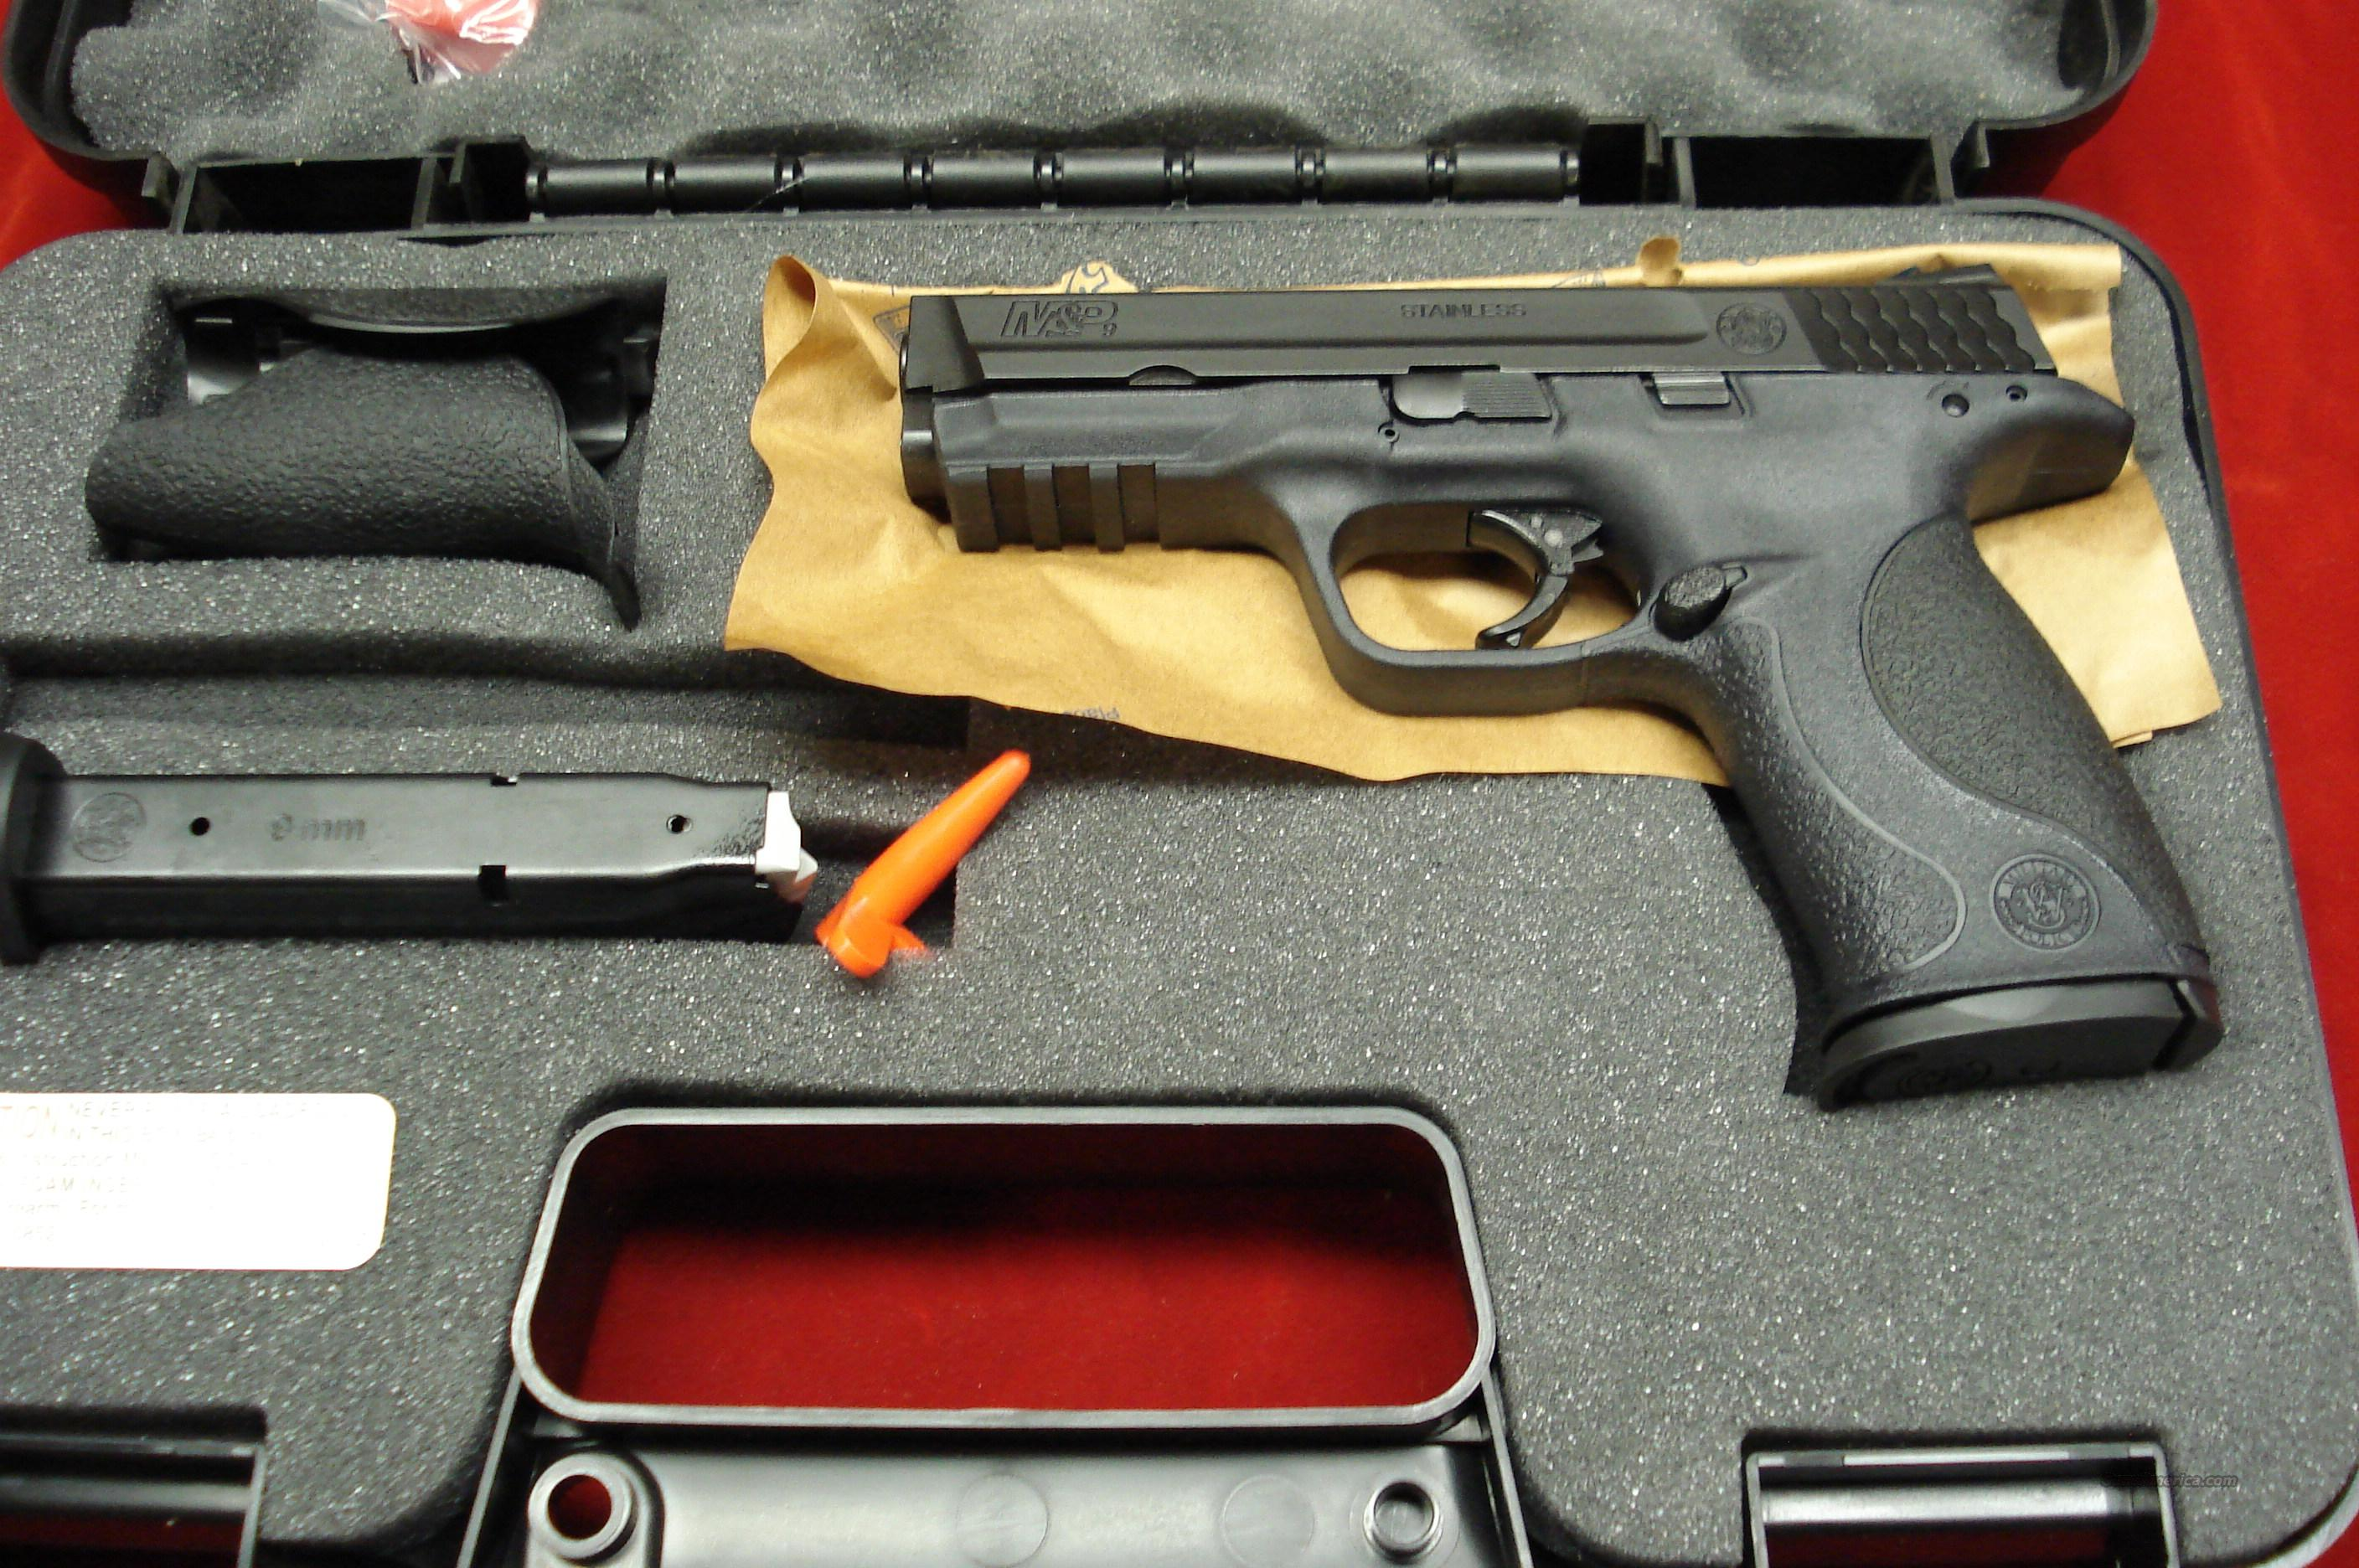 SMITH AND WESSON M&P 9MM HIGH/CAP NEW   Guns > Pistols > Smith & Wesson Pistols - Autos > Polymer Frame